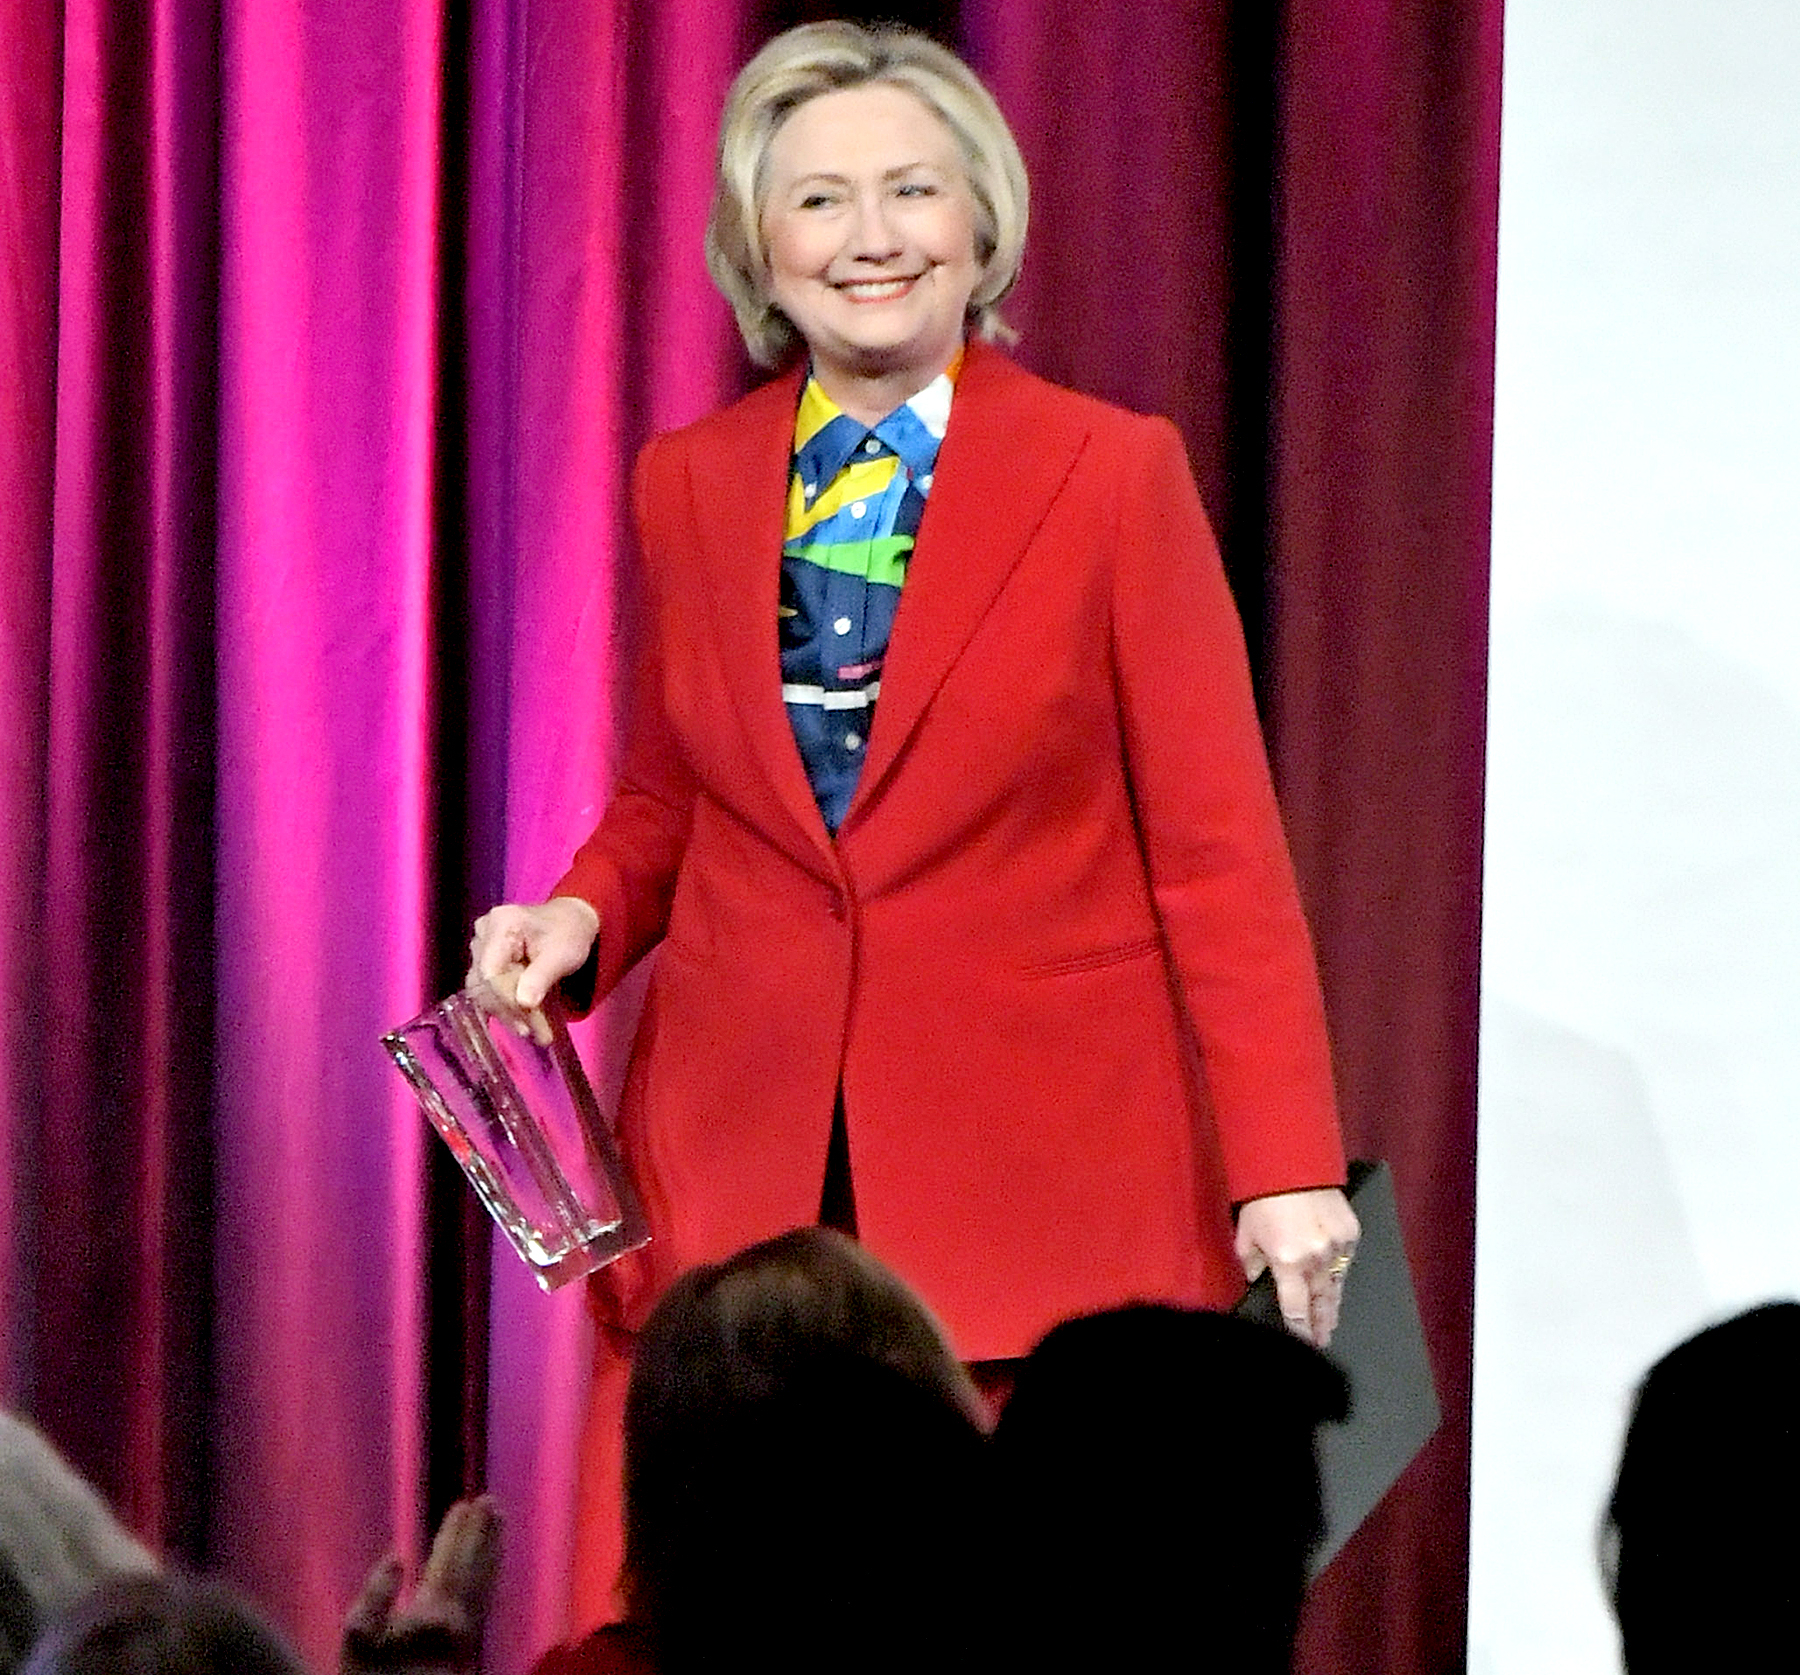 Hillary Clinton speaks onstage during the 2017 Girls Inc. New York luncheon celebrating women of achievement at New York Marriott Marquis Hotel on March 7, 2017 in New York City.